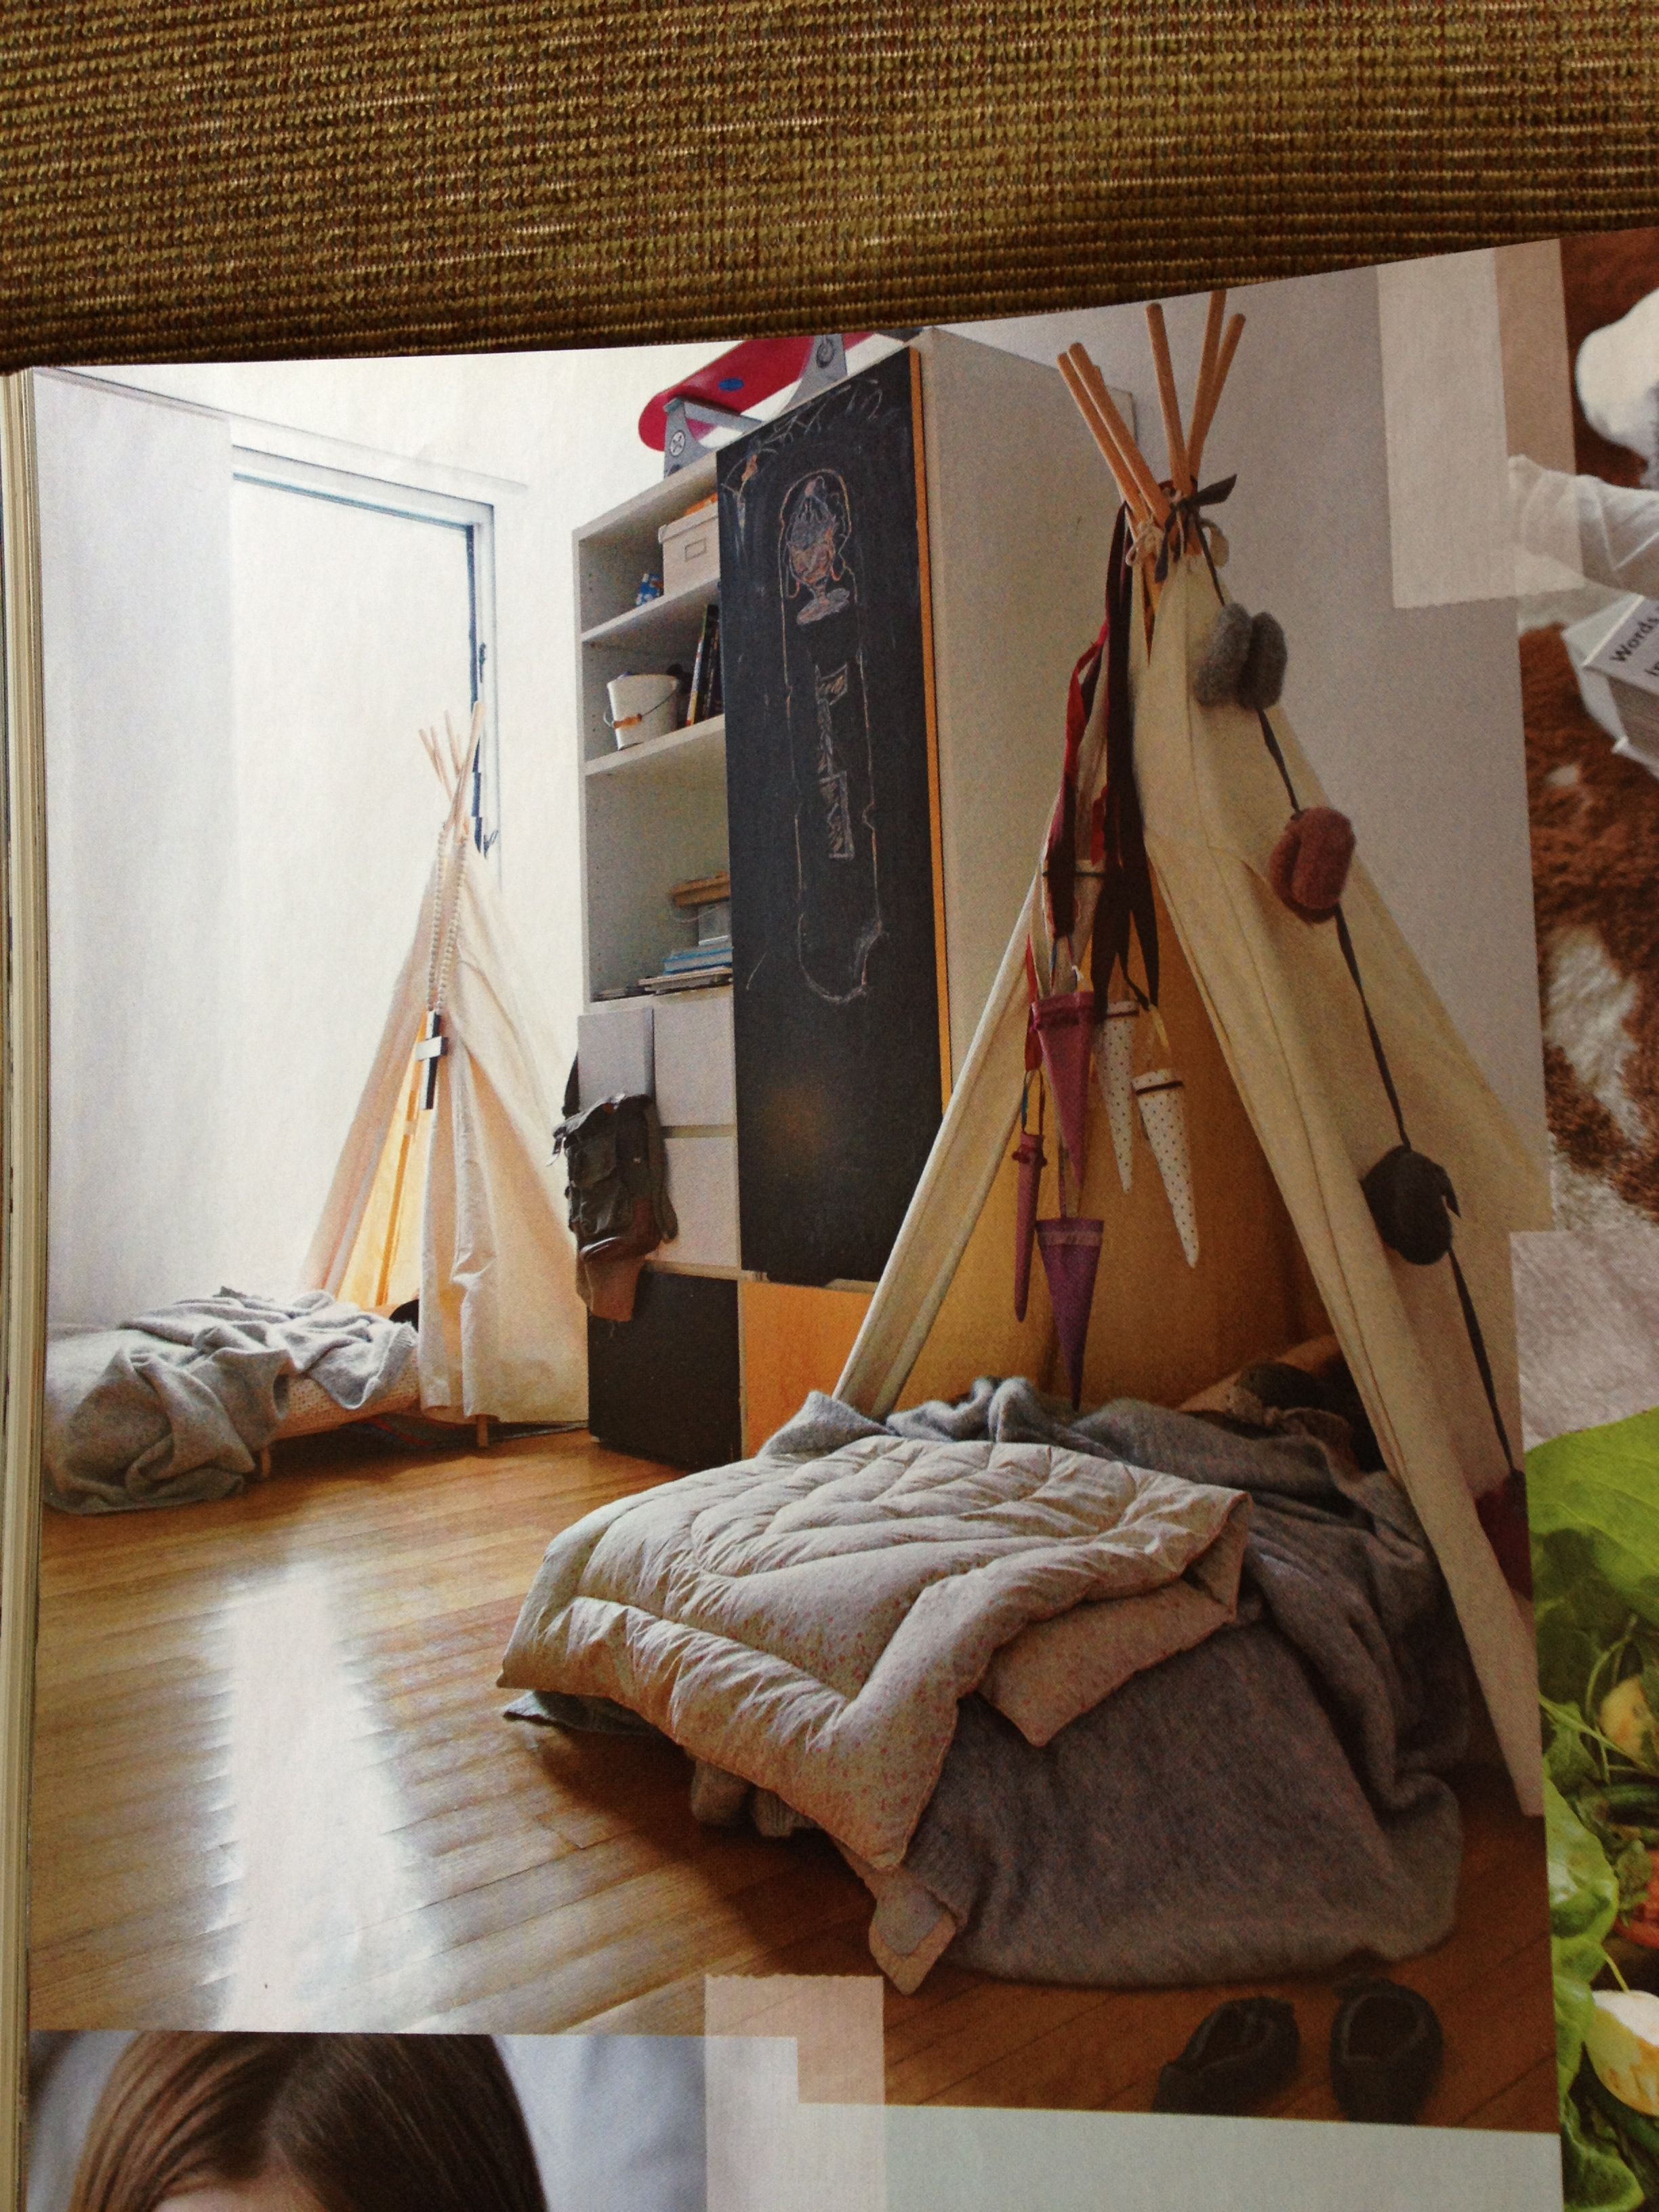 Tents Form A Cute Canopy Over The Kids Beds